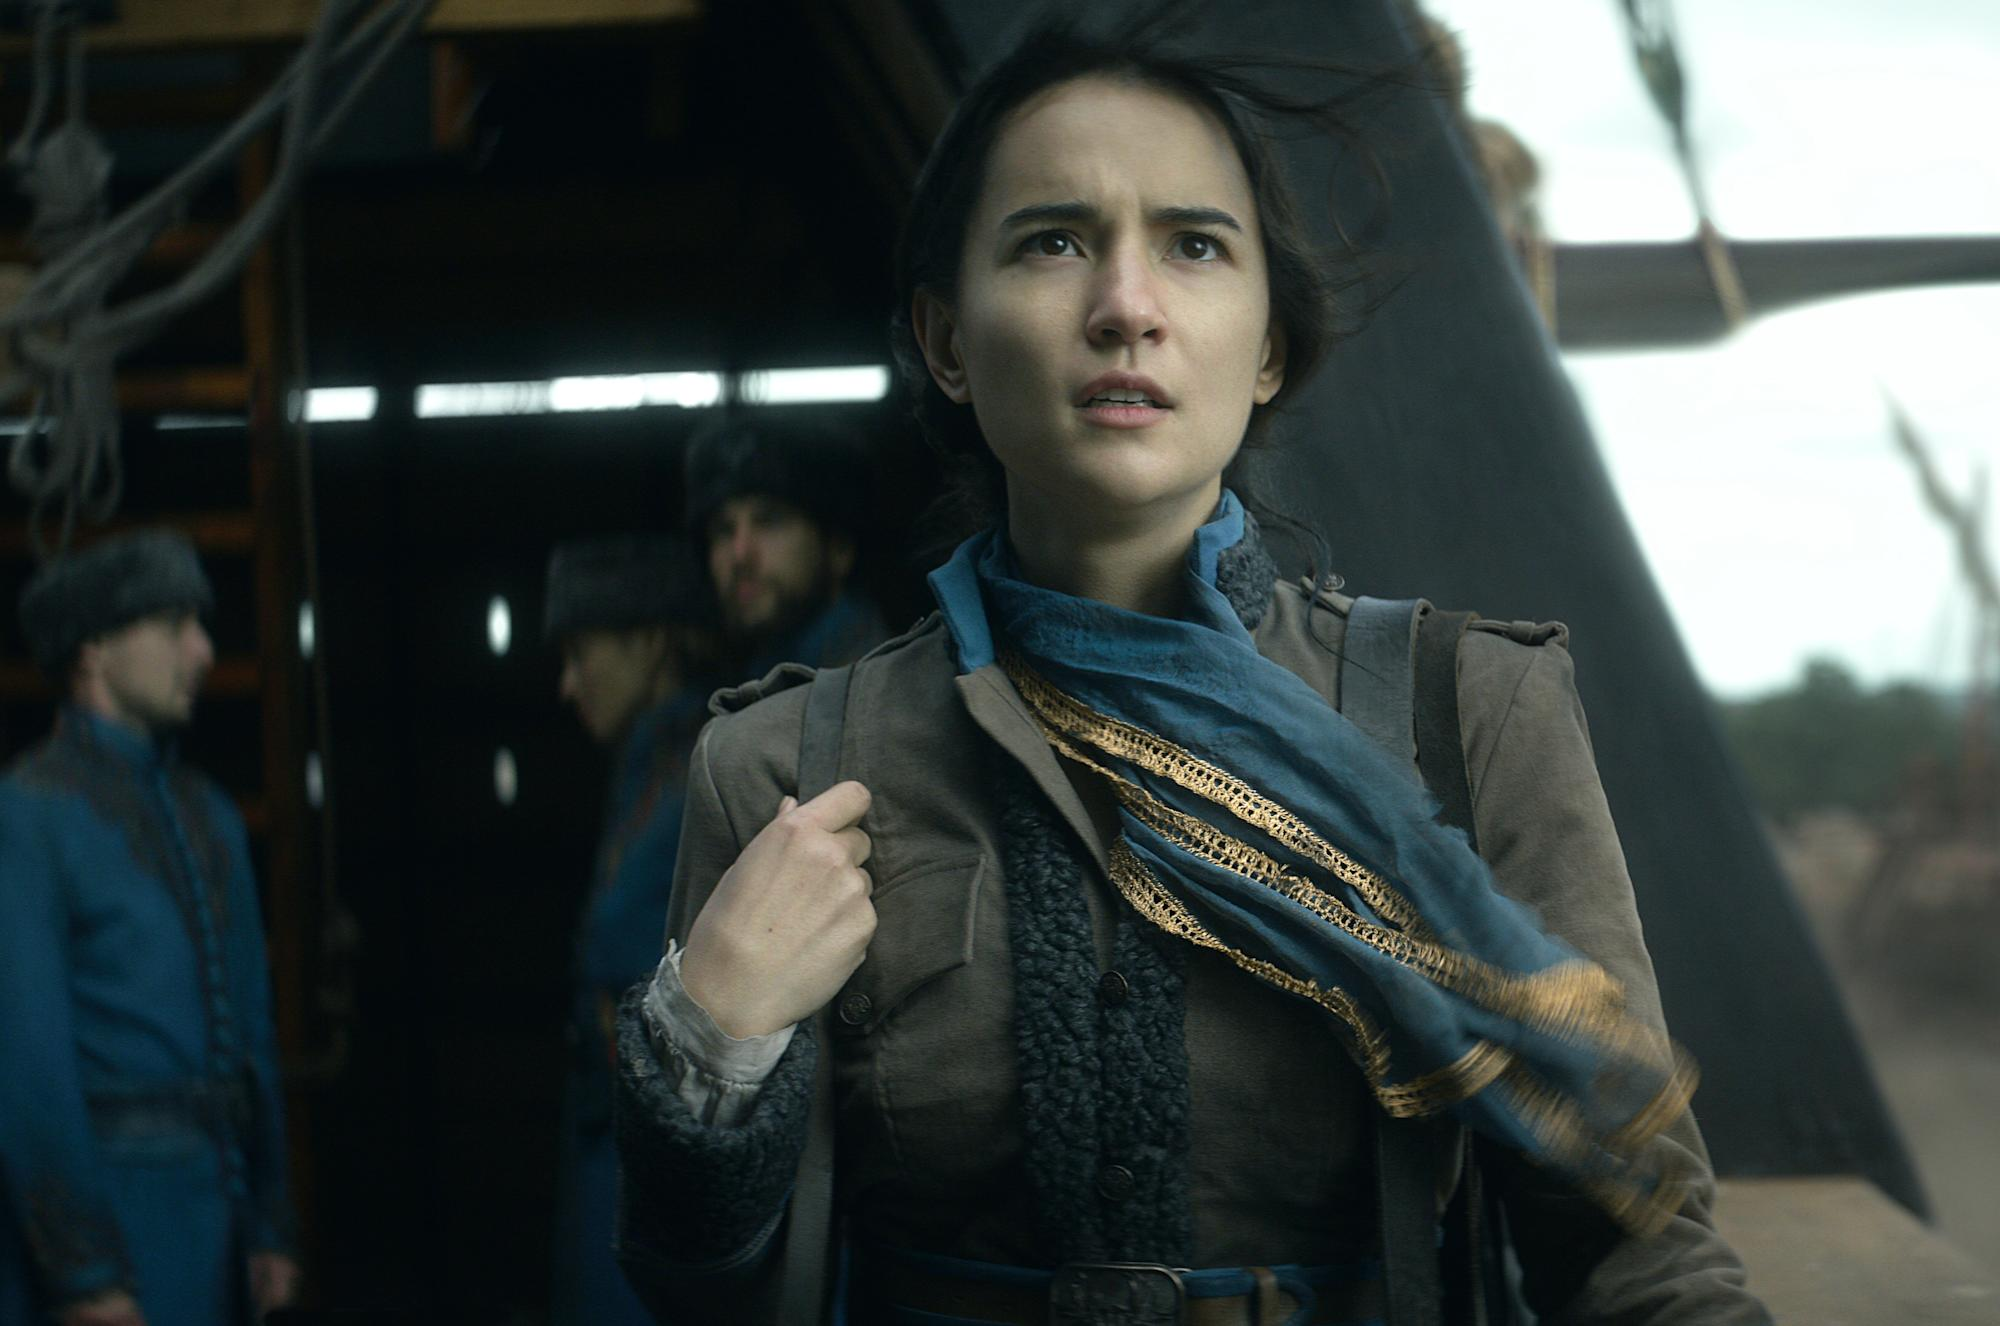 Netflix's first 'Shadow and Bone' trailer shows off the fantasy world of Ravka